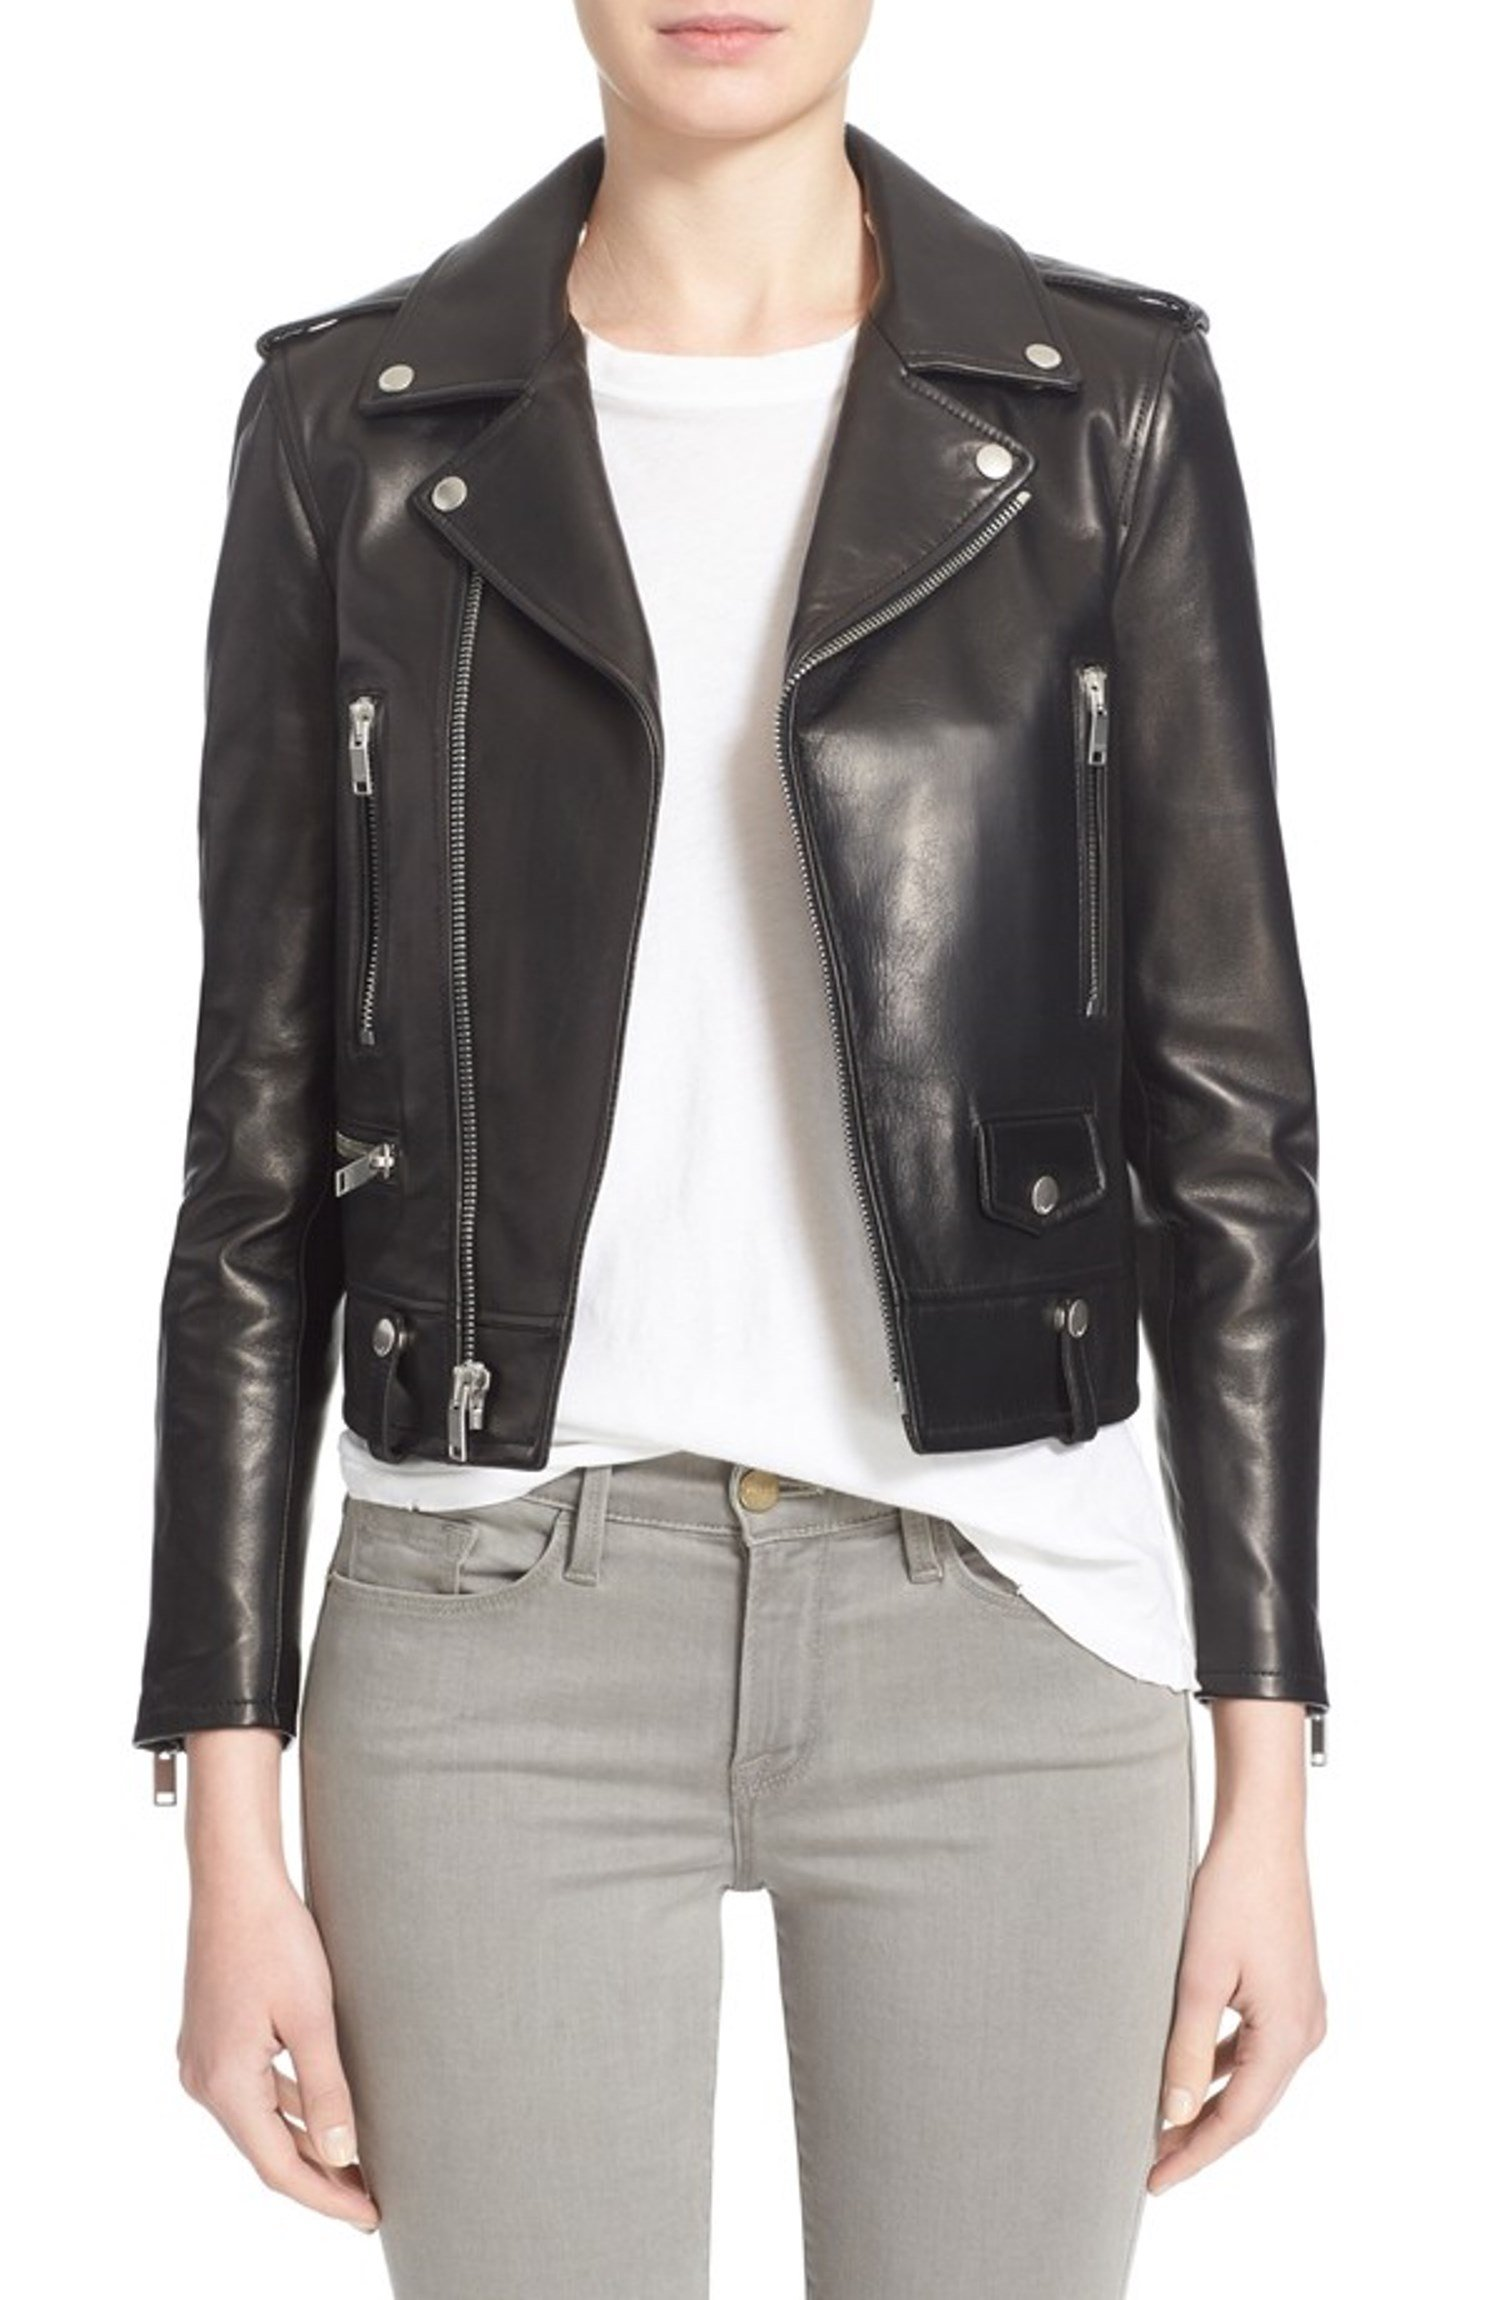 Prim leather Women's Lambskin Leather Bomber Biker Jacket Medium Black by Prim leather